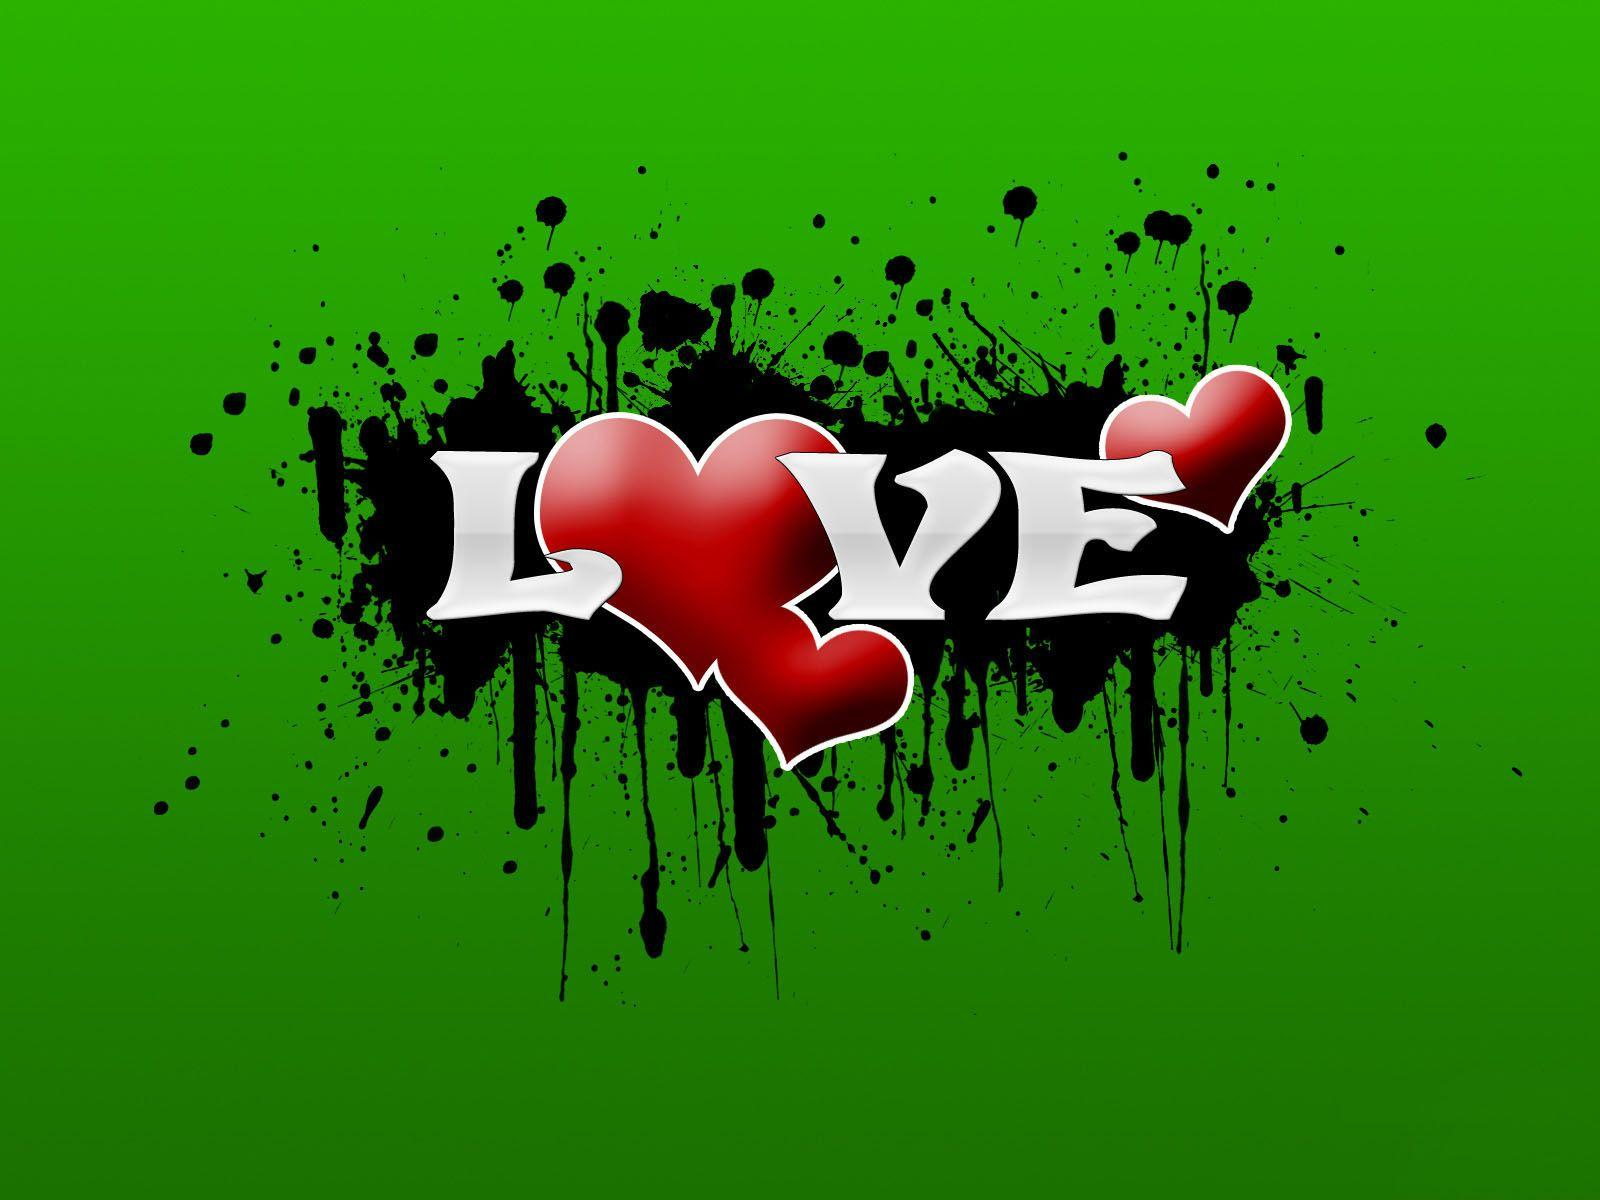 3d Love Live Wallpaper For Pc : Love Wallpapers 3D - Wallpaper cave